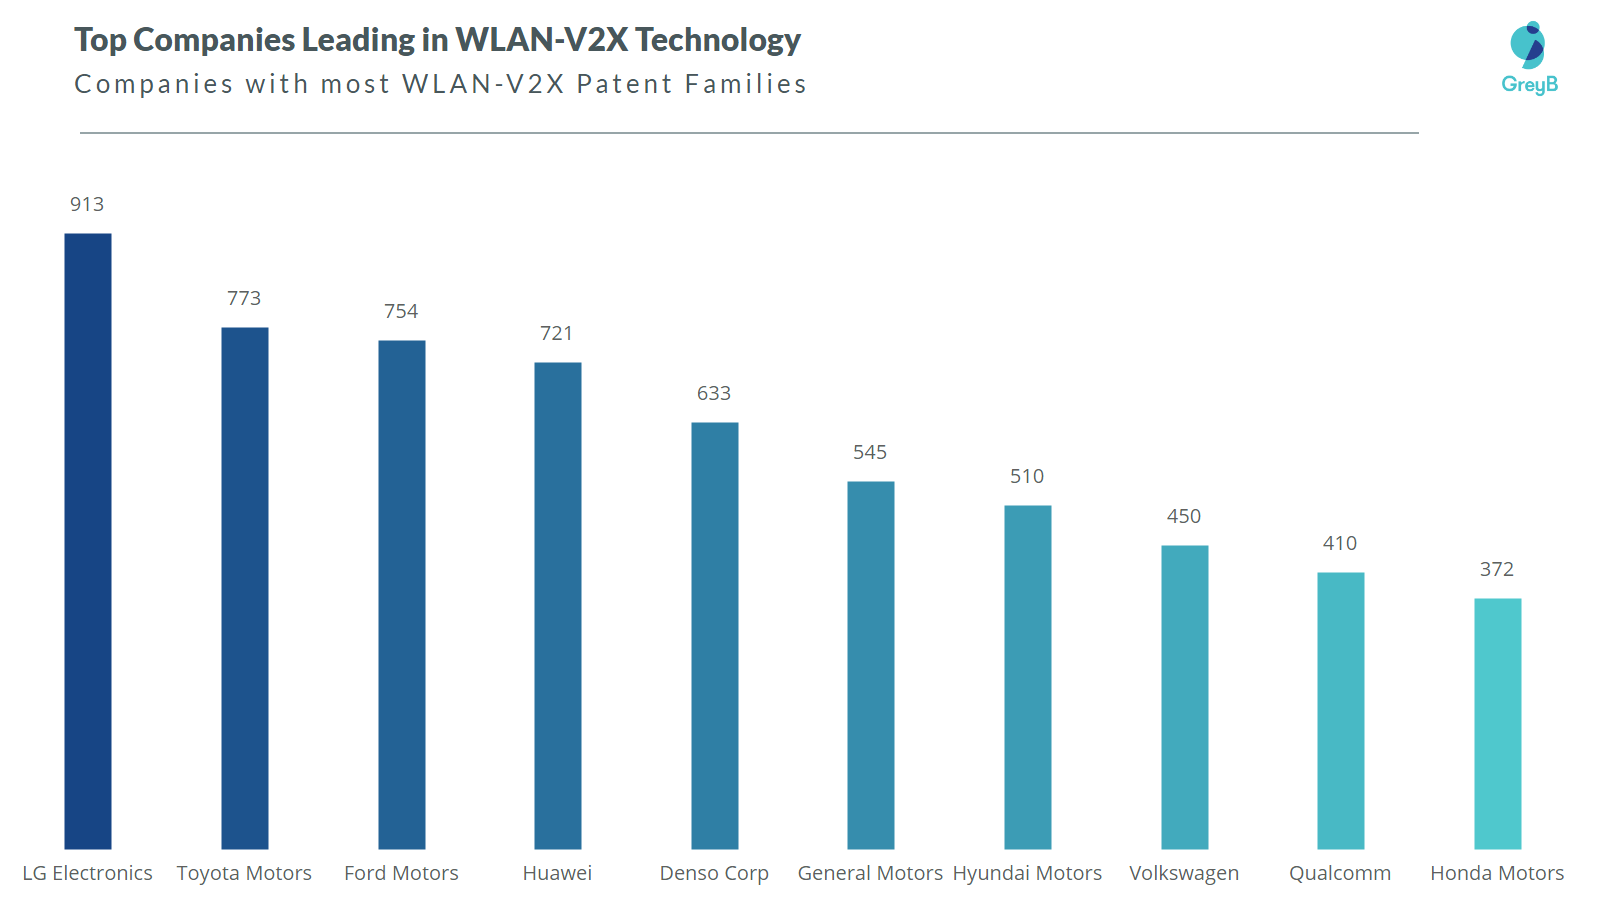 Companies with most WLAN-V2X patents